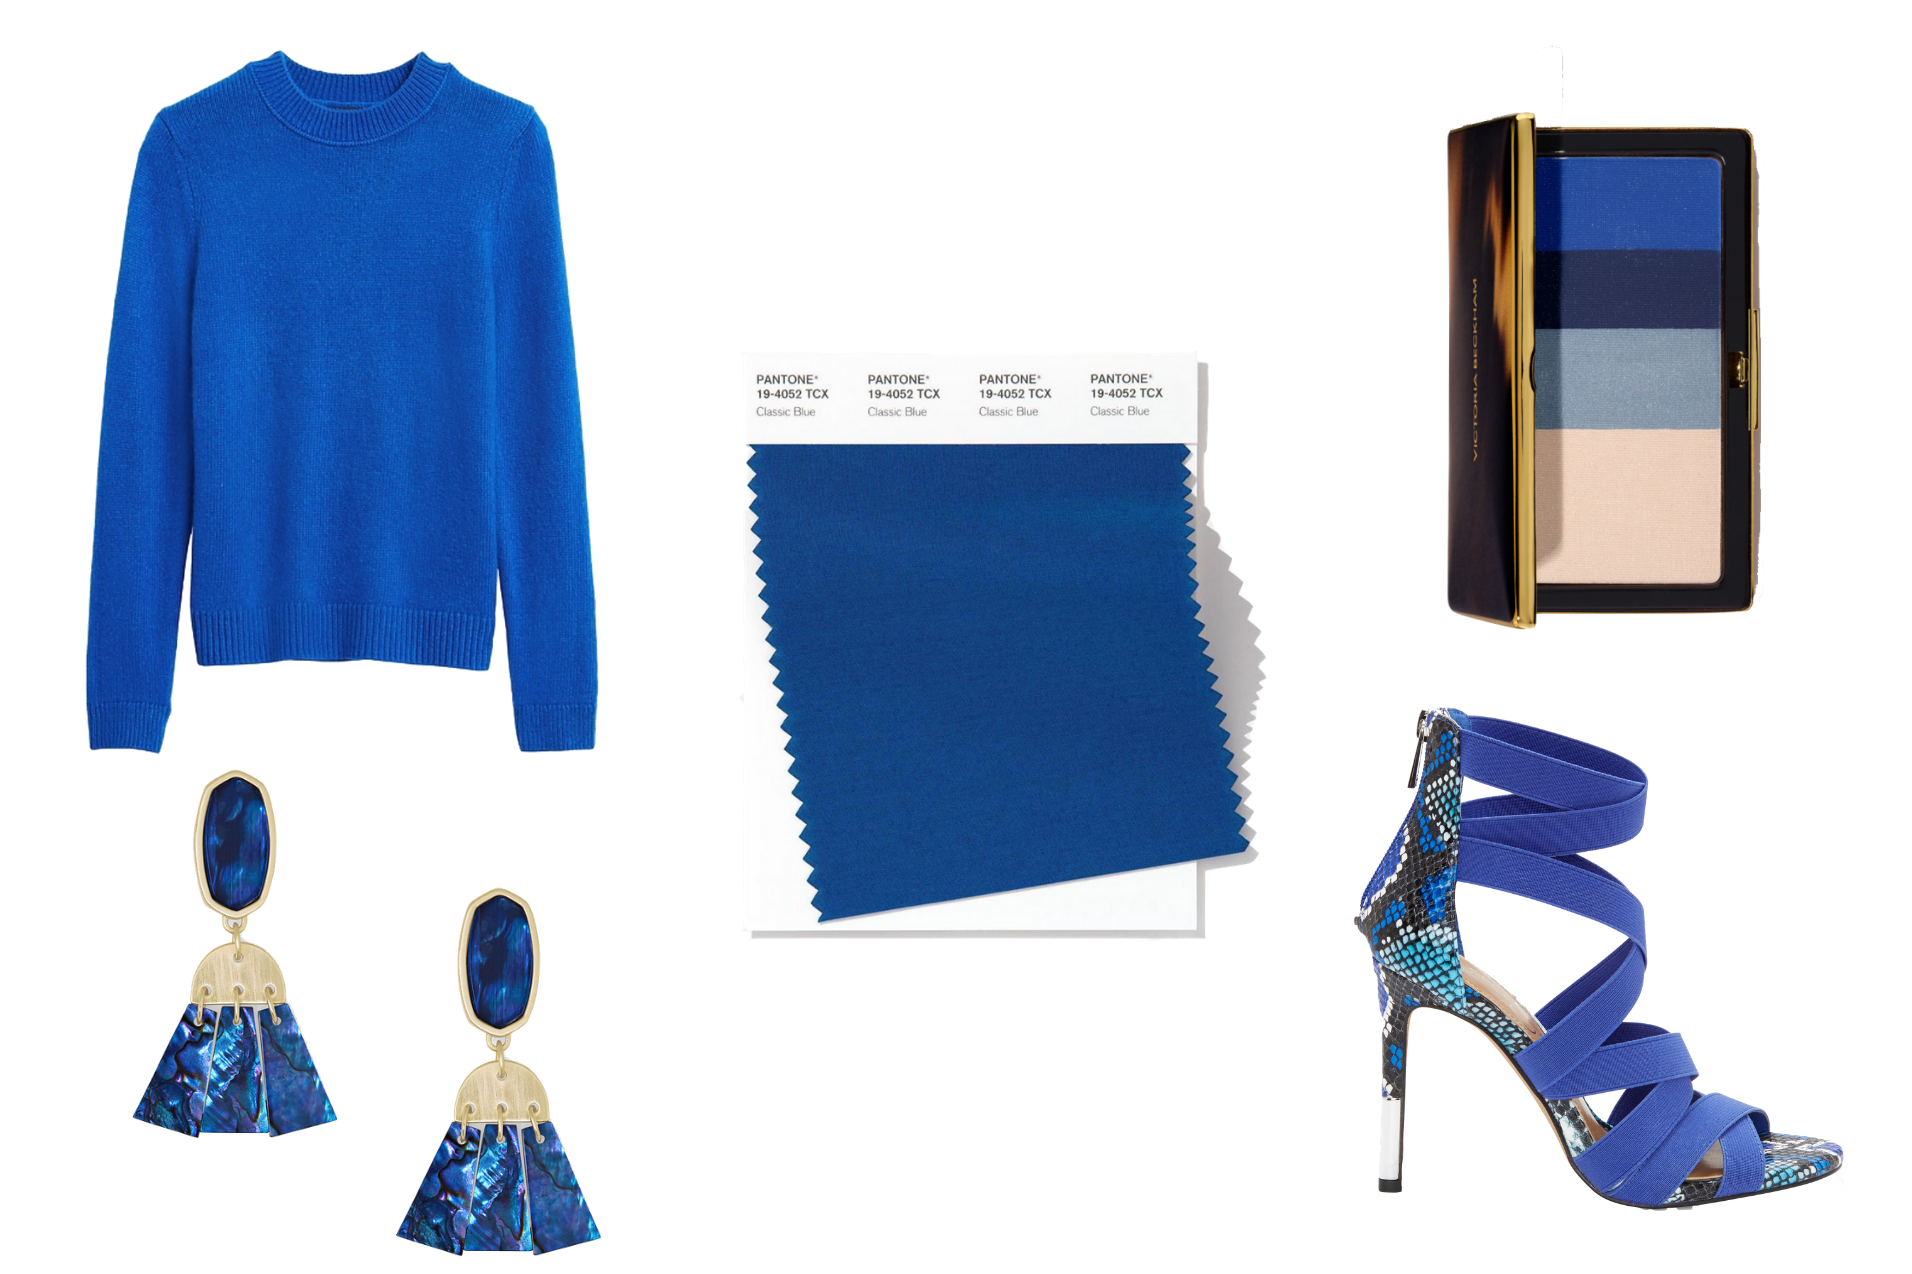 Pantone Classic Blue Fashion by popular Michigan fashion blog, The HSS Feed: collage image of a blue sweater, blue earrings, blue shoes, blue makeup pallet, and blue paint swap.